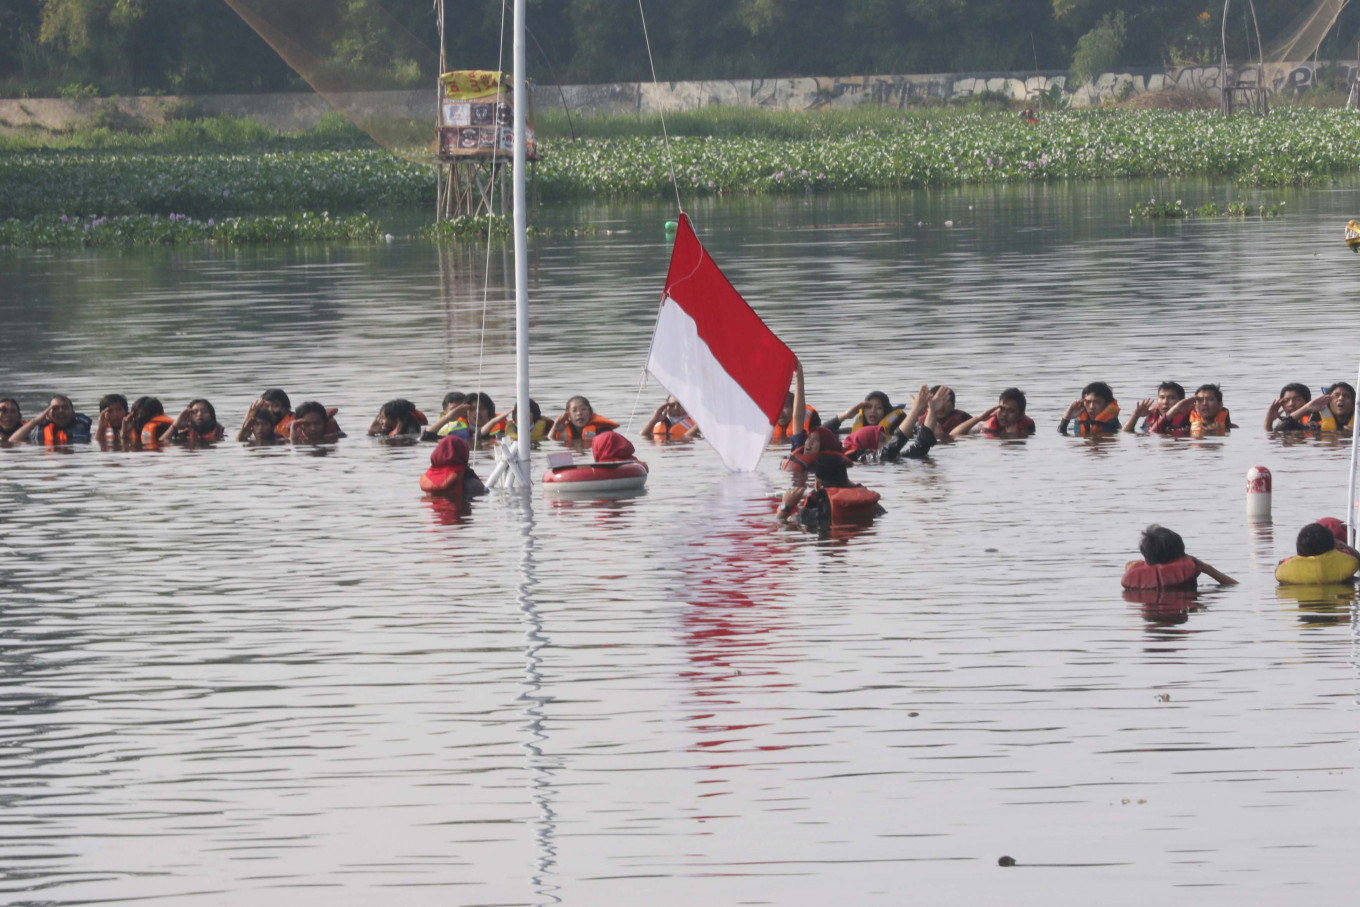 Aquatic anniversary: Environmental activists hold a flag hoisting ceremony in Muara 7 Lake in Pamulang, South Tangerang on Monday to mark the country's Independence Day and promote the preservation of lakes across the country. JP/Dhoni Setiawan